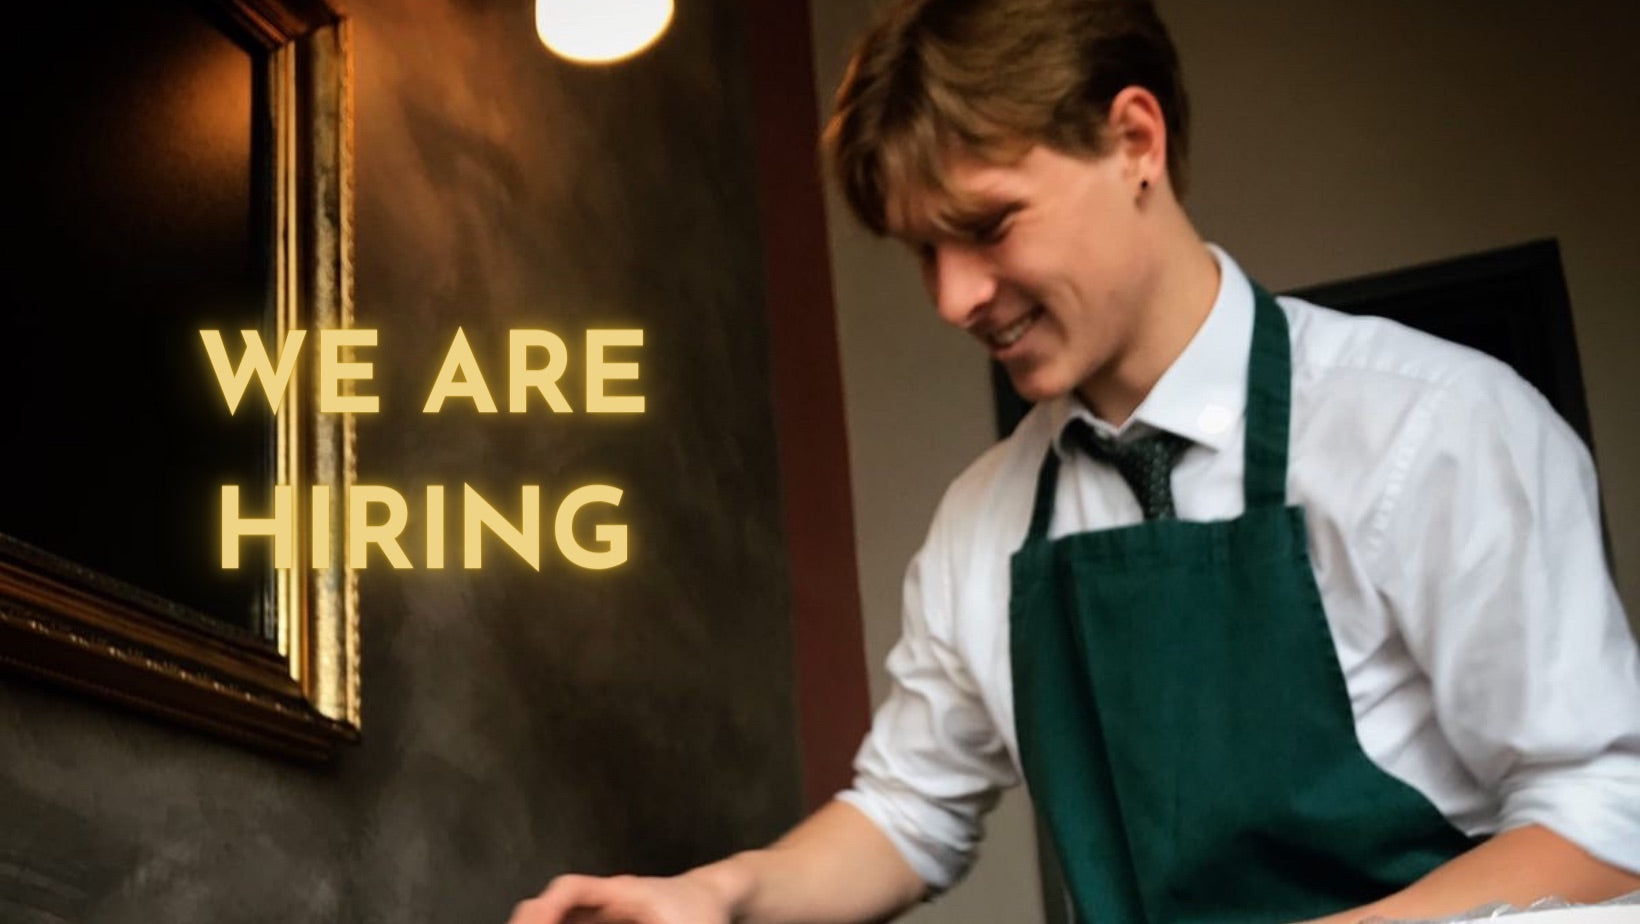 George smiling as he lays a table with the words WE ARE HIRING glowing in capital letters next to him